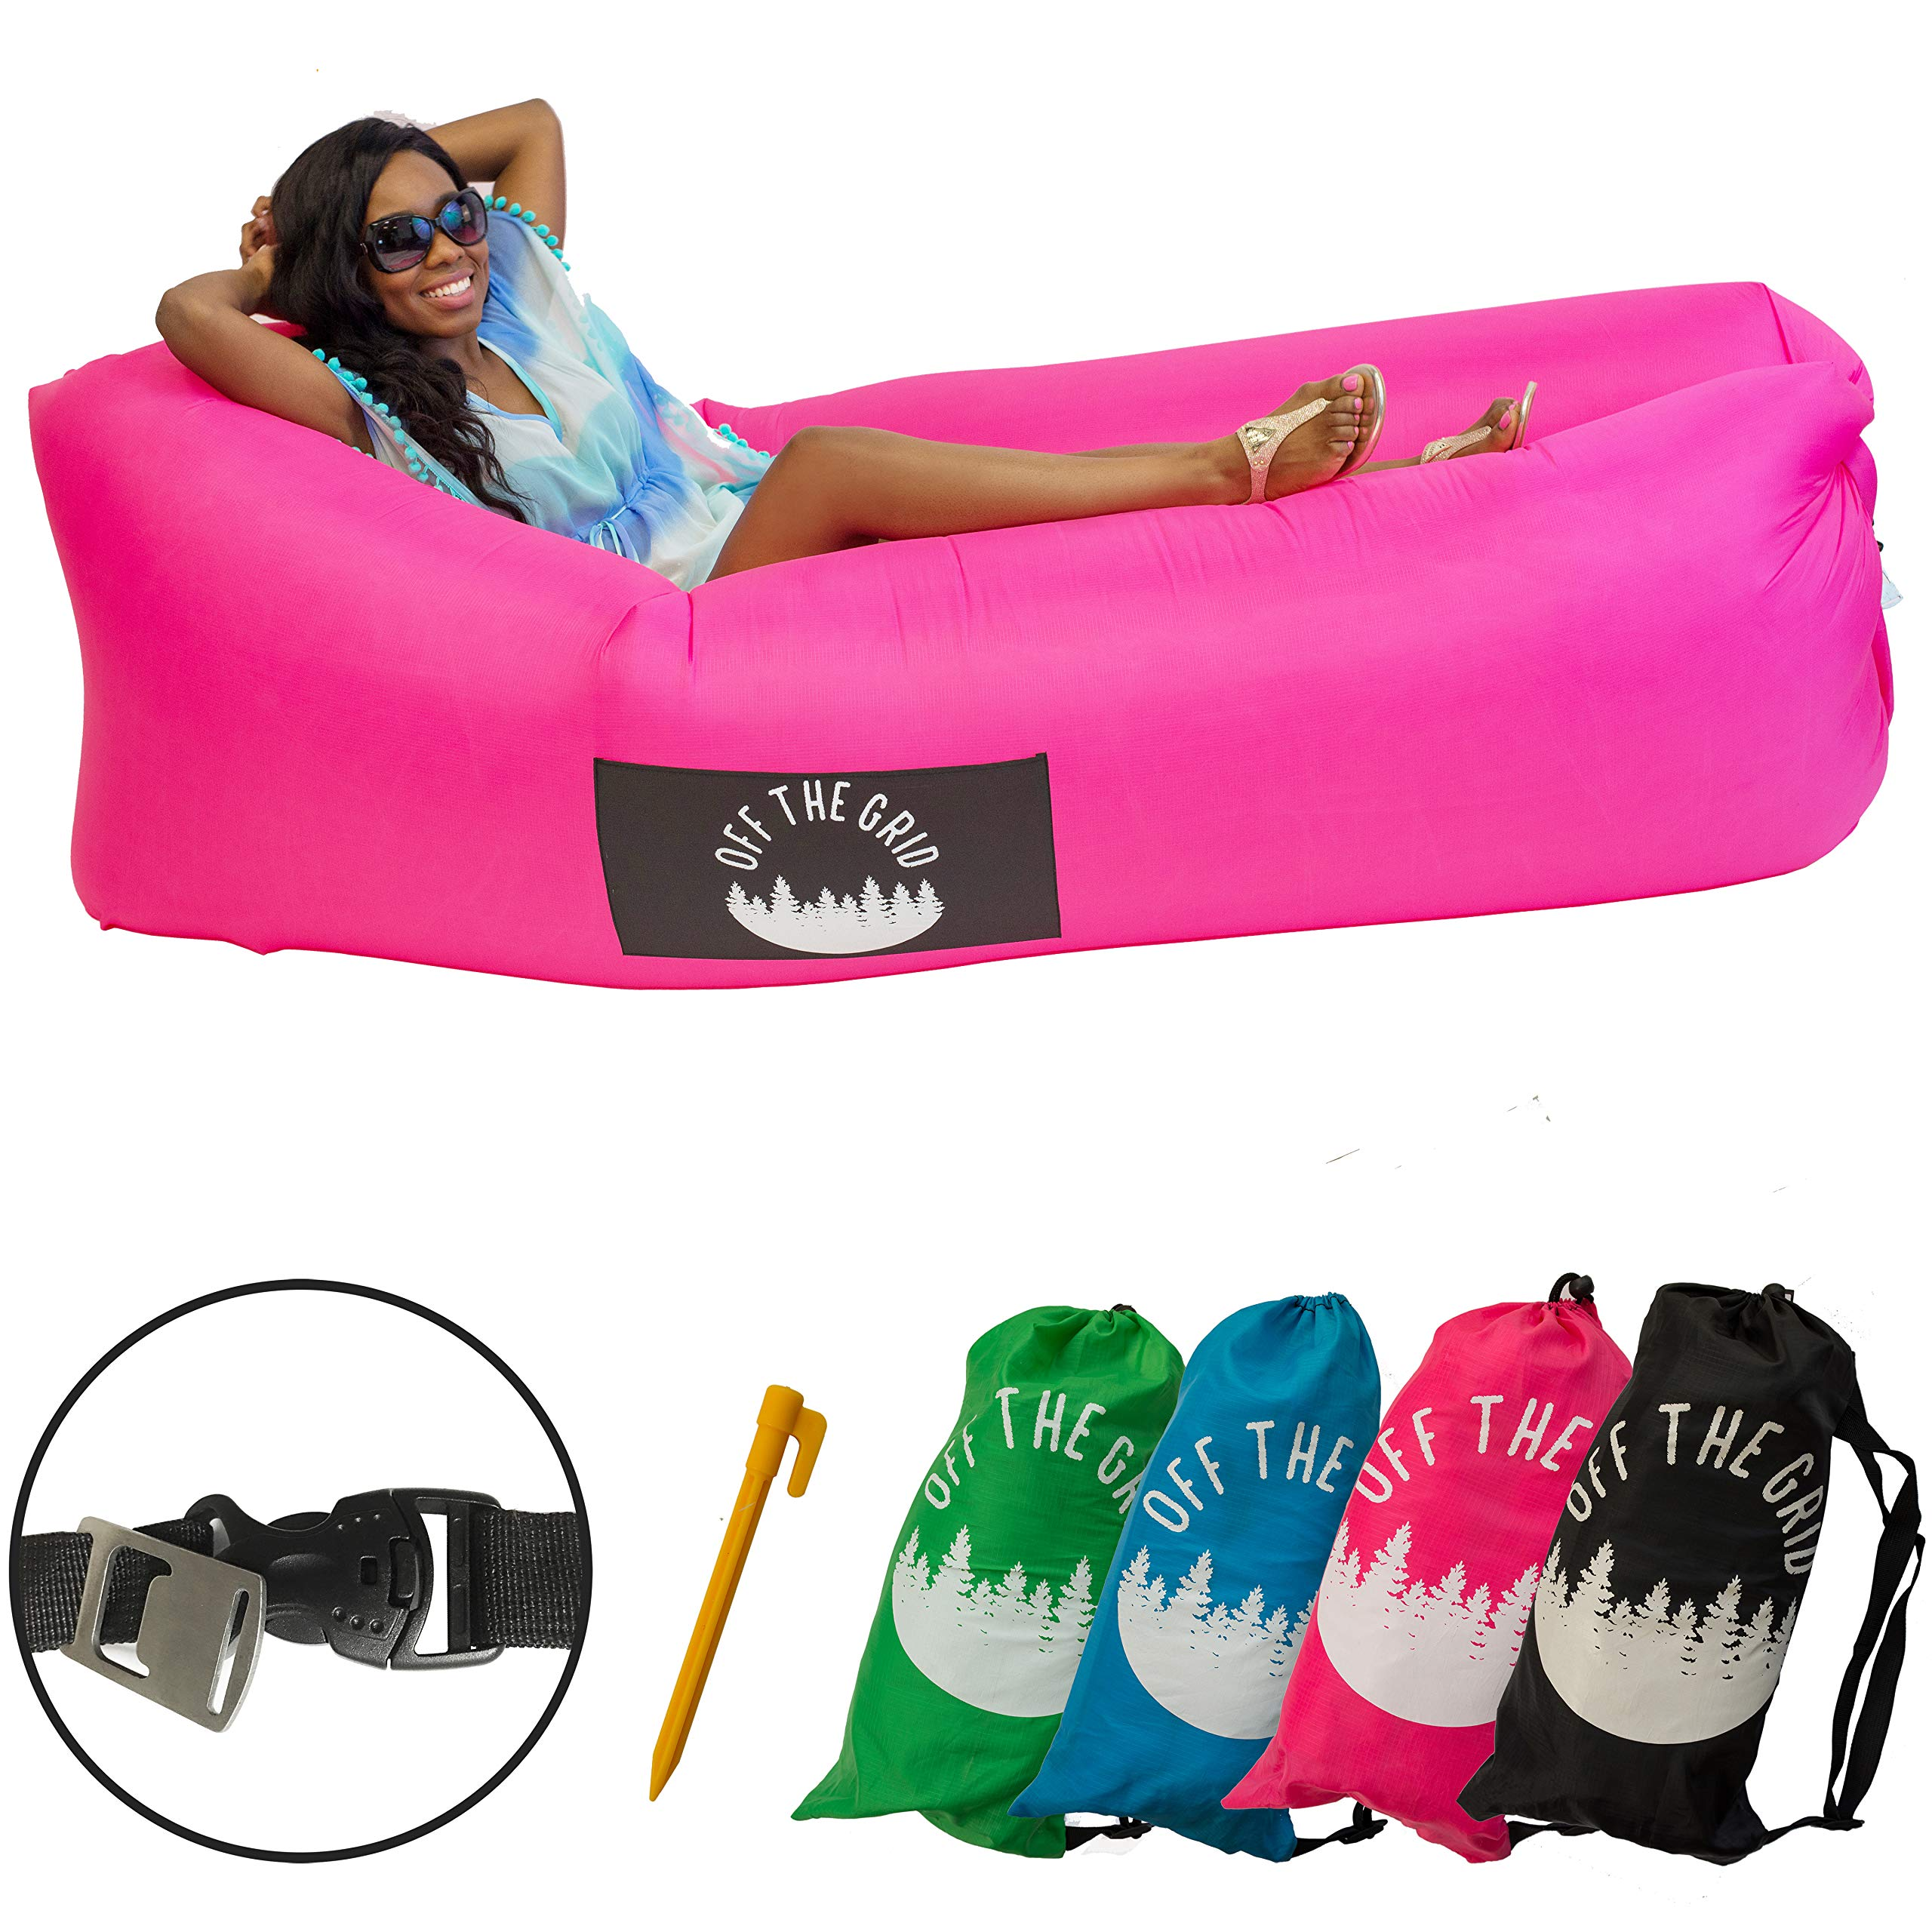 Off the Grid Inflatable Lounger - Air Sofa Wind Chair Hammock - Floating/Portable Bed for Beach, Pool, Camping, Outdoors Lazy Bag Cloud Couch (Pink) by Off the Grid